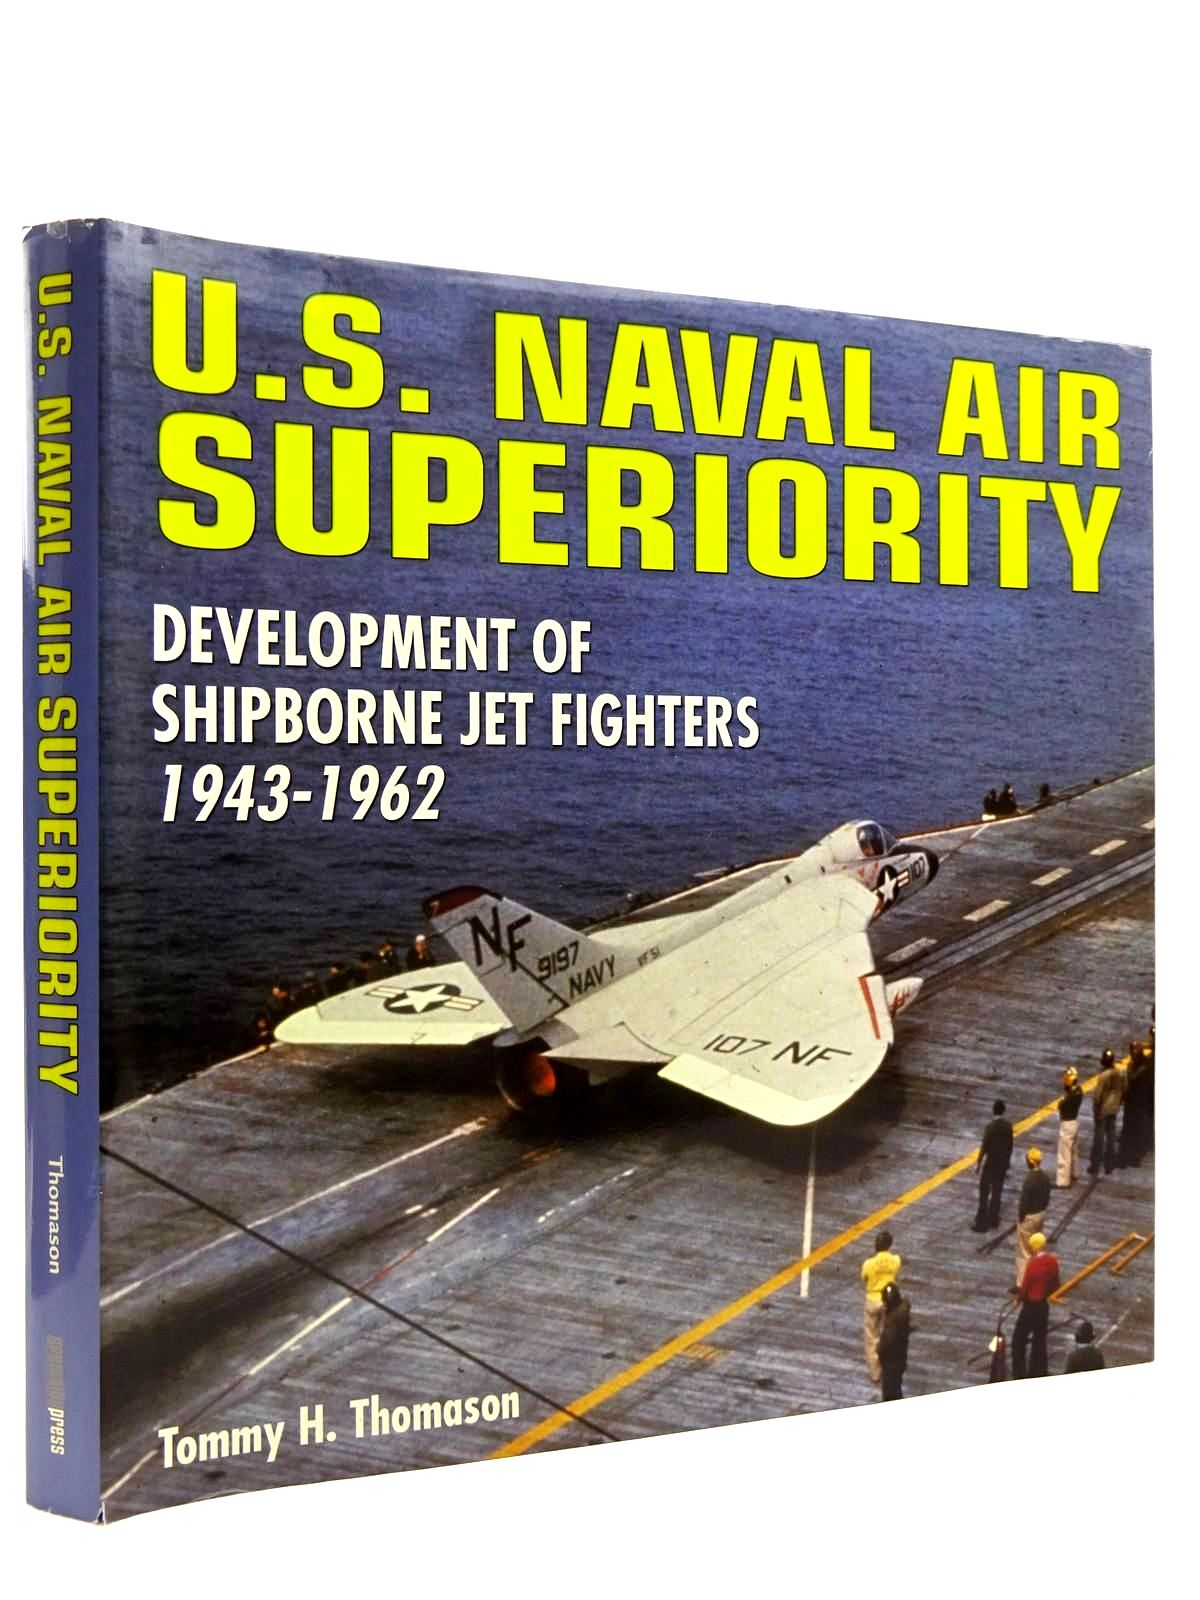 Photo of U.S. NAVAL AIR SUPERIORITY DEVELOPMENT OF SHIPBORNE JET FIGHTERS 1943-1962 written by Thomason, Tommy H. published by Speciality Press (STOCK CODE: 2131571)  for sale by Stella & Rose's Books